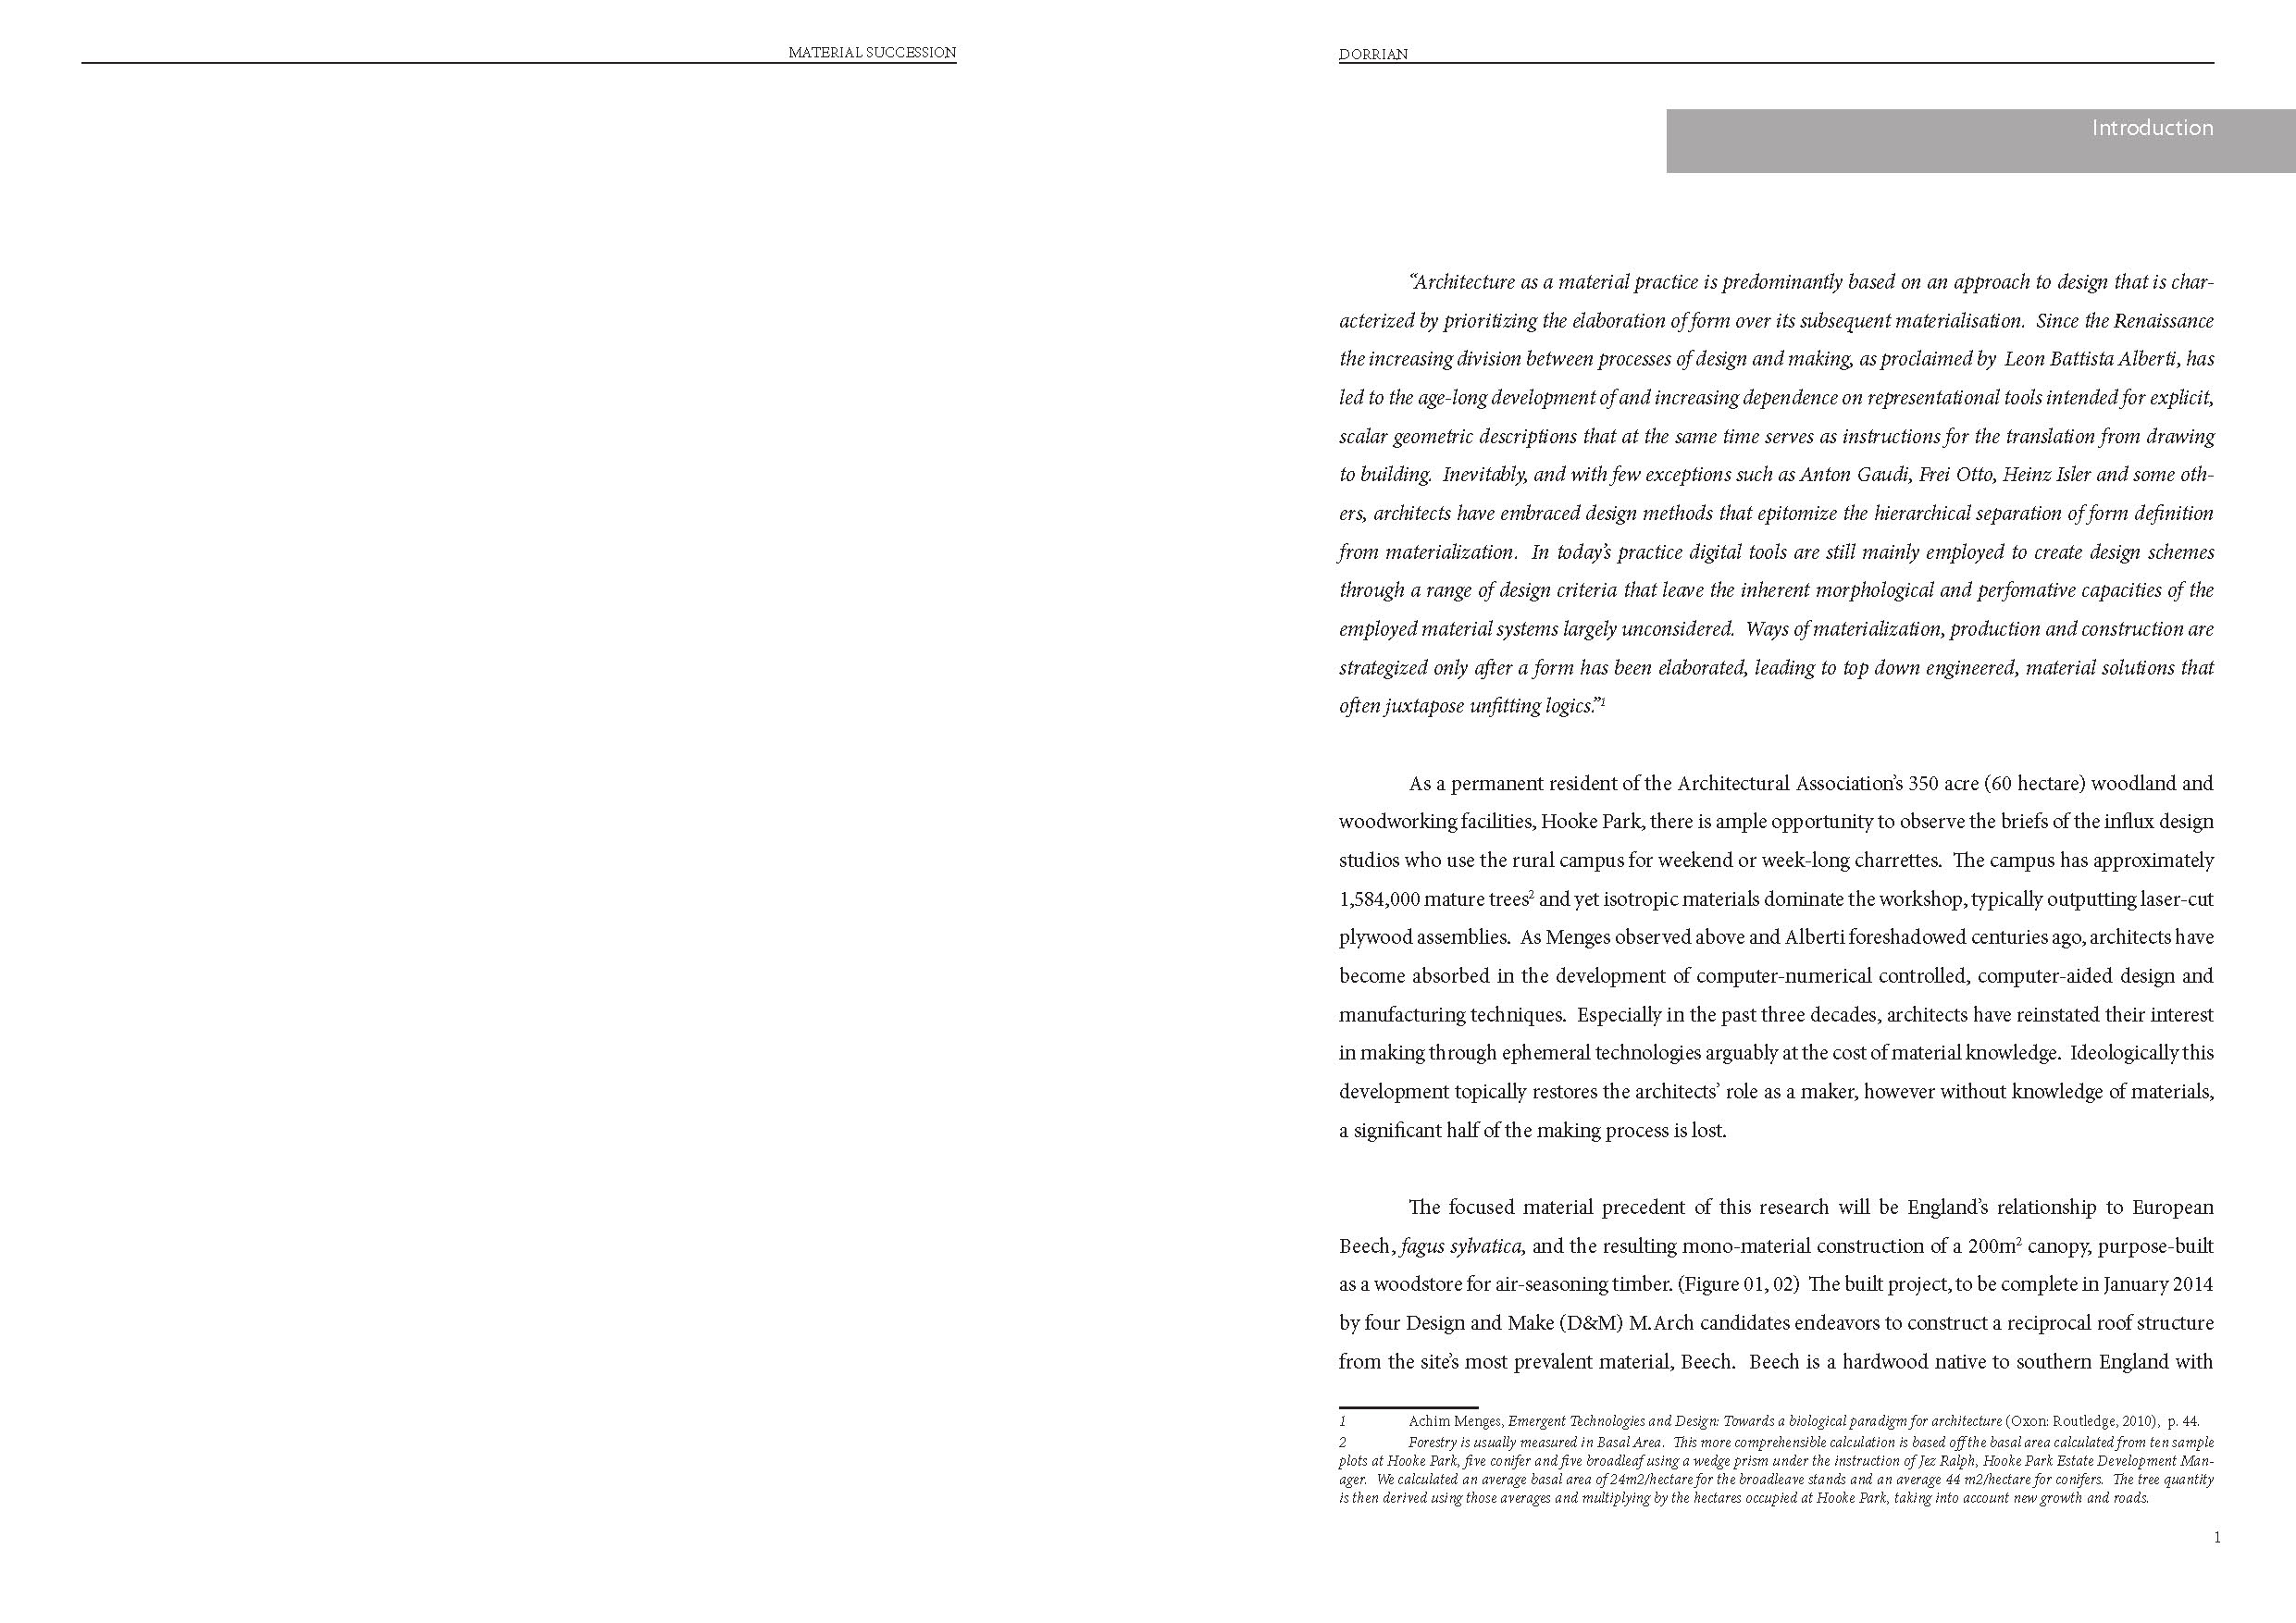 130131_Material SuccessionFORSUBMITTAL_Page_05.jpg